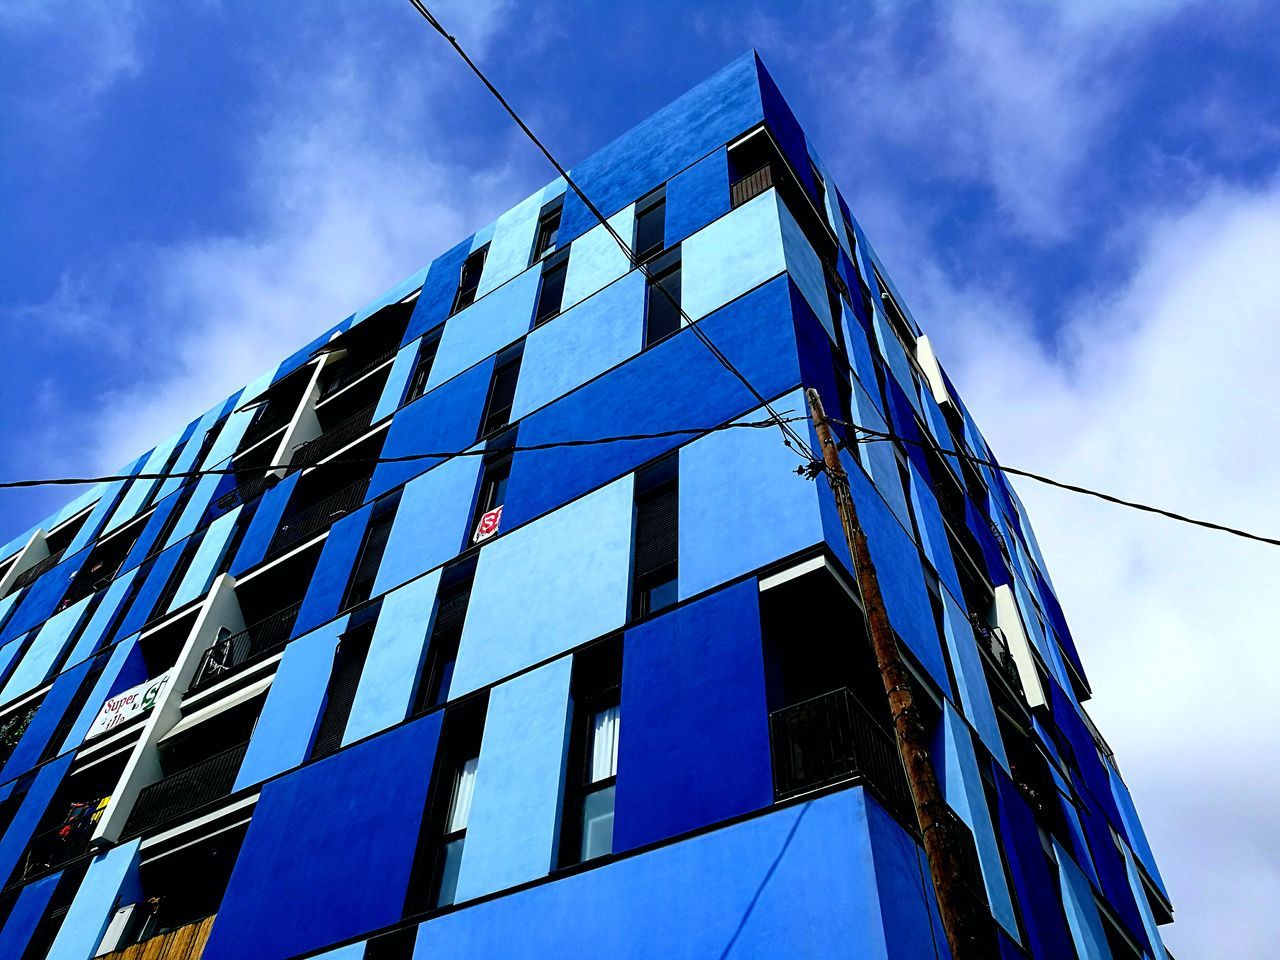 Low Angle View Architecture Built Structure Window Building Exterior Sky No People Technology Corporate Business Modern Day Outdoors City Barcelona Barcelona Streets EyeEm Diversity Art Is Everywhere The Secret Spaces EyeEmNewHere The Architect - 2017 EyeEm Awards